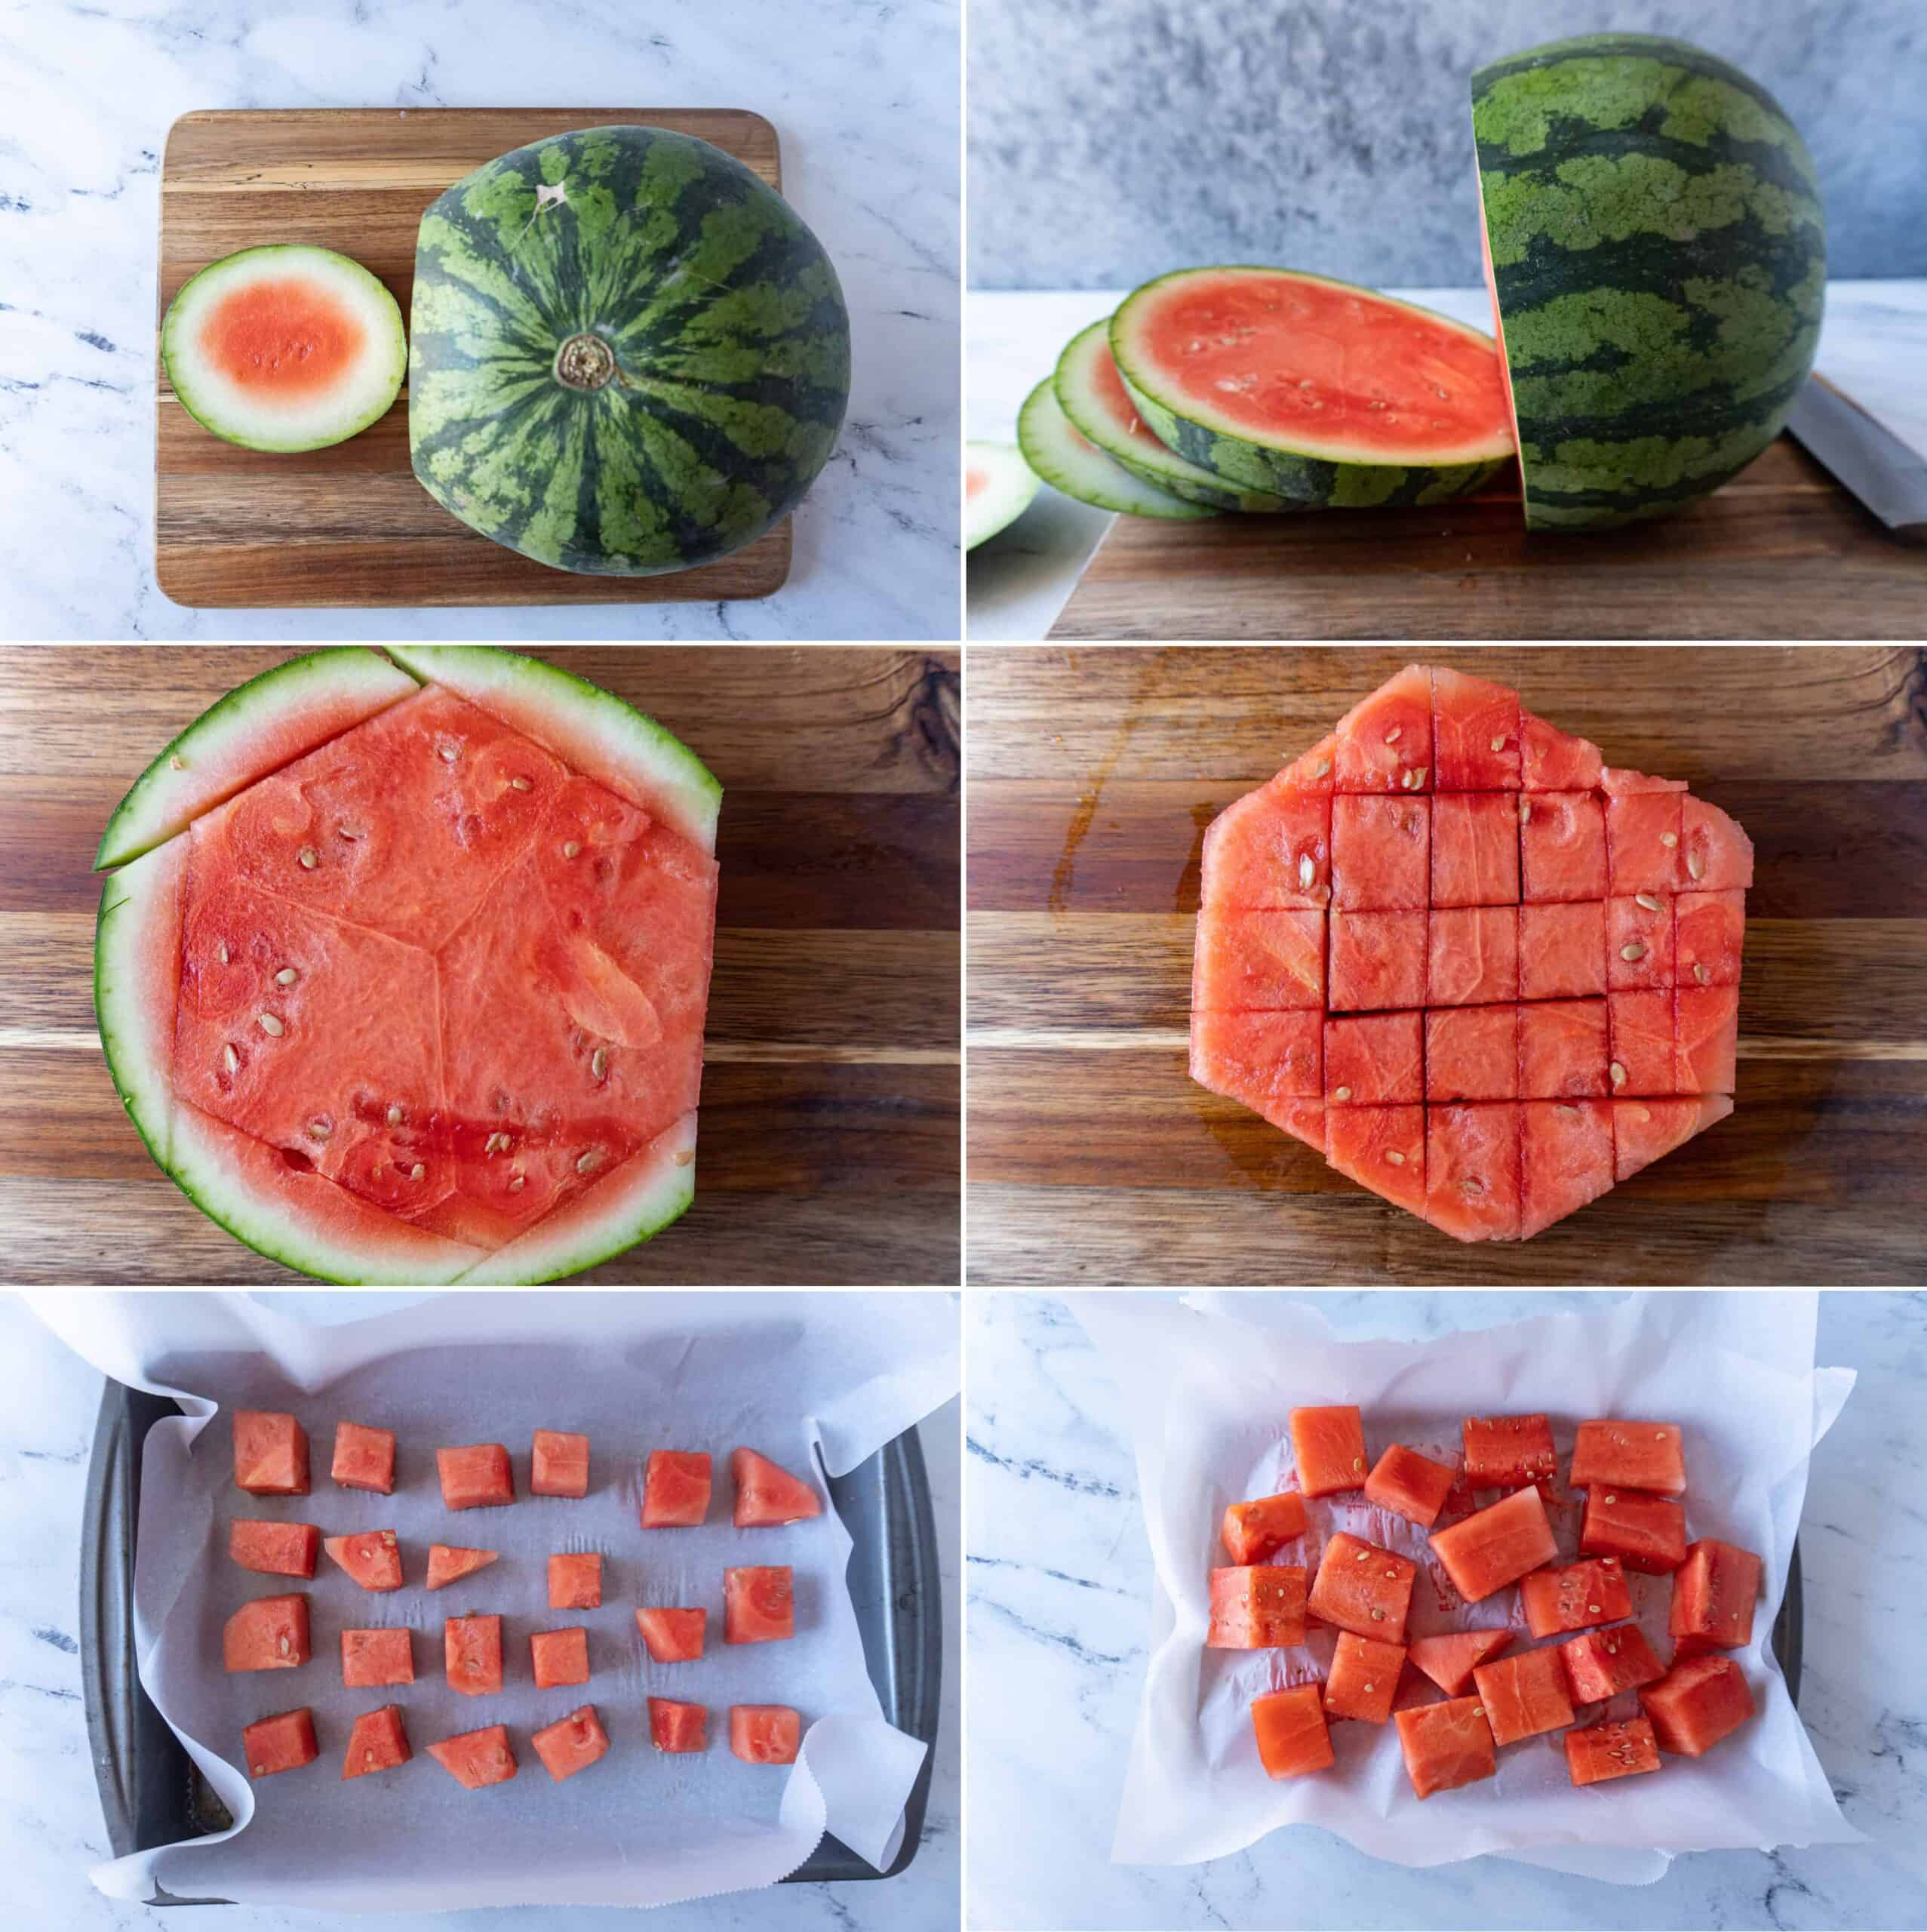 Process shots of how to cut and freeze watermelon